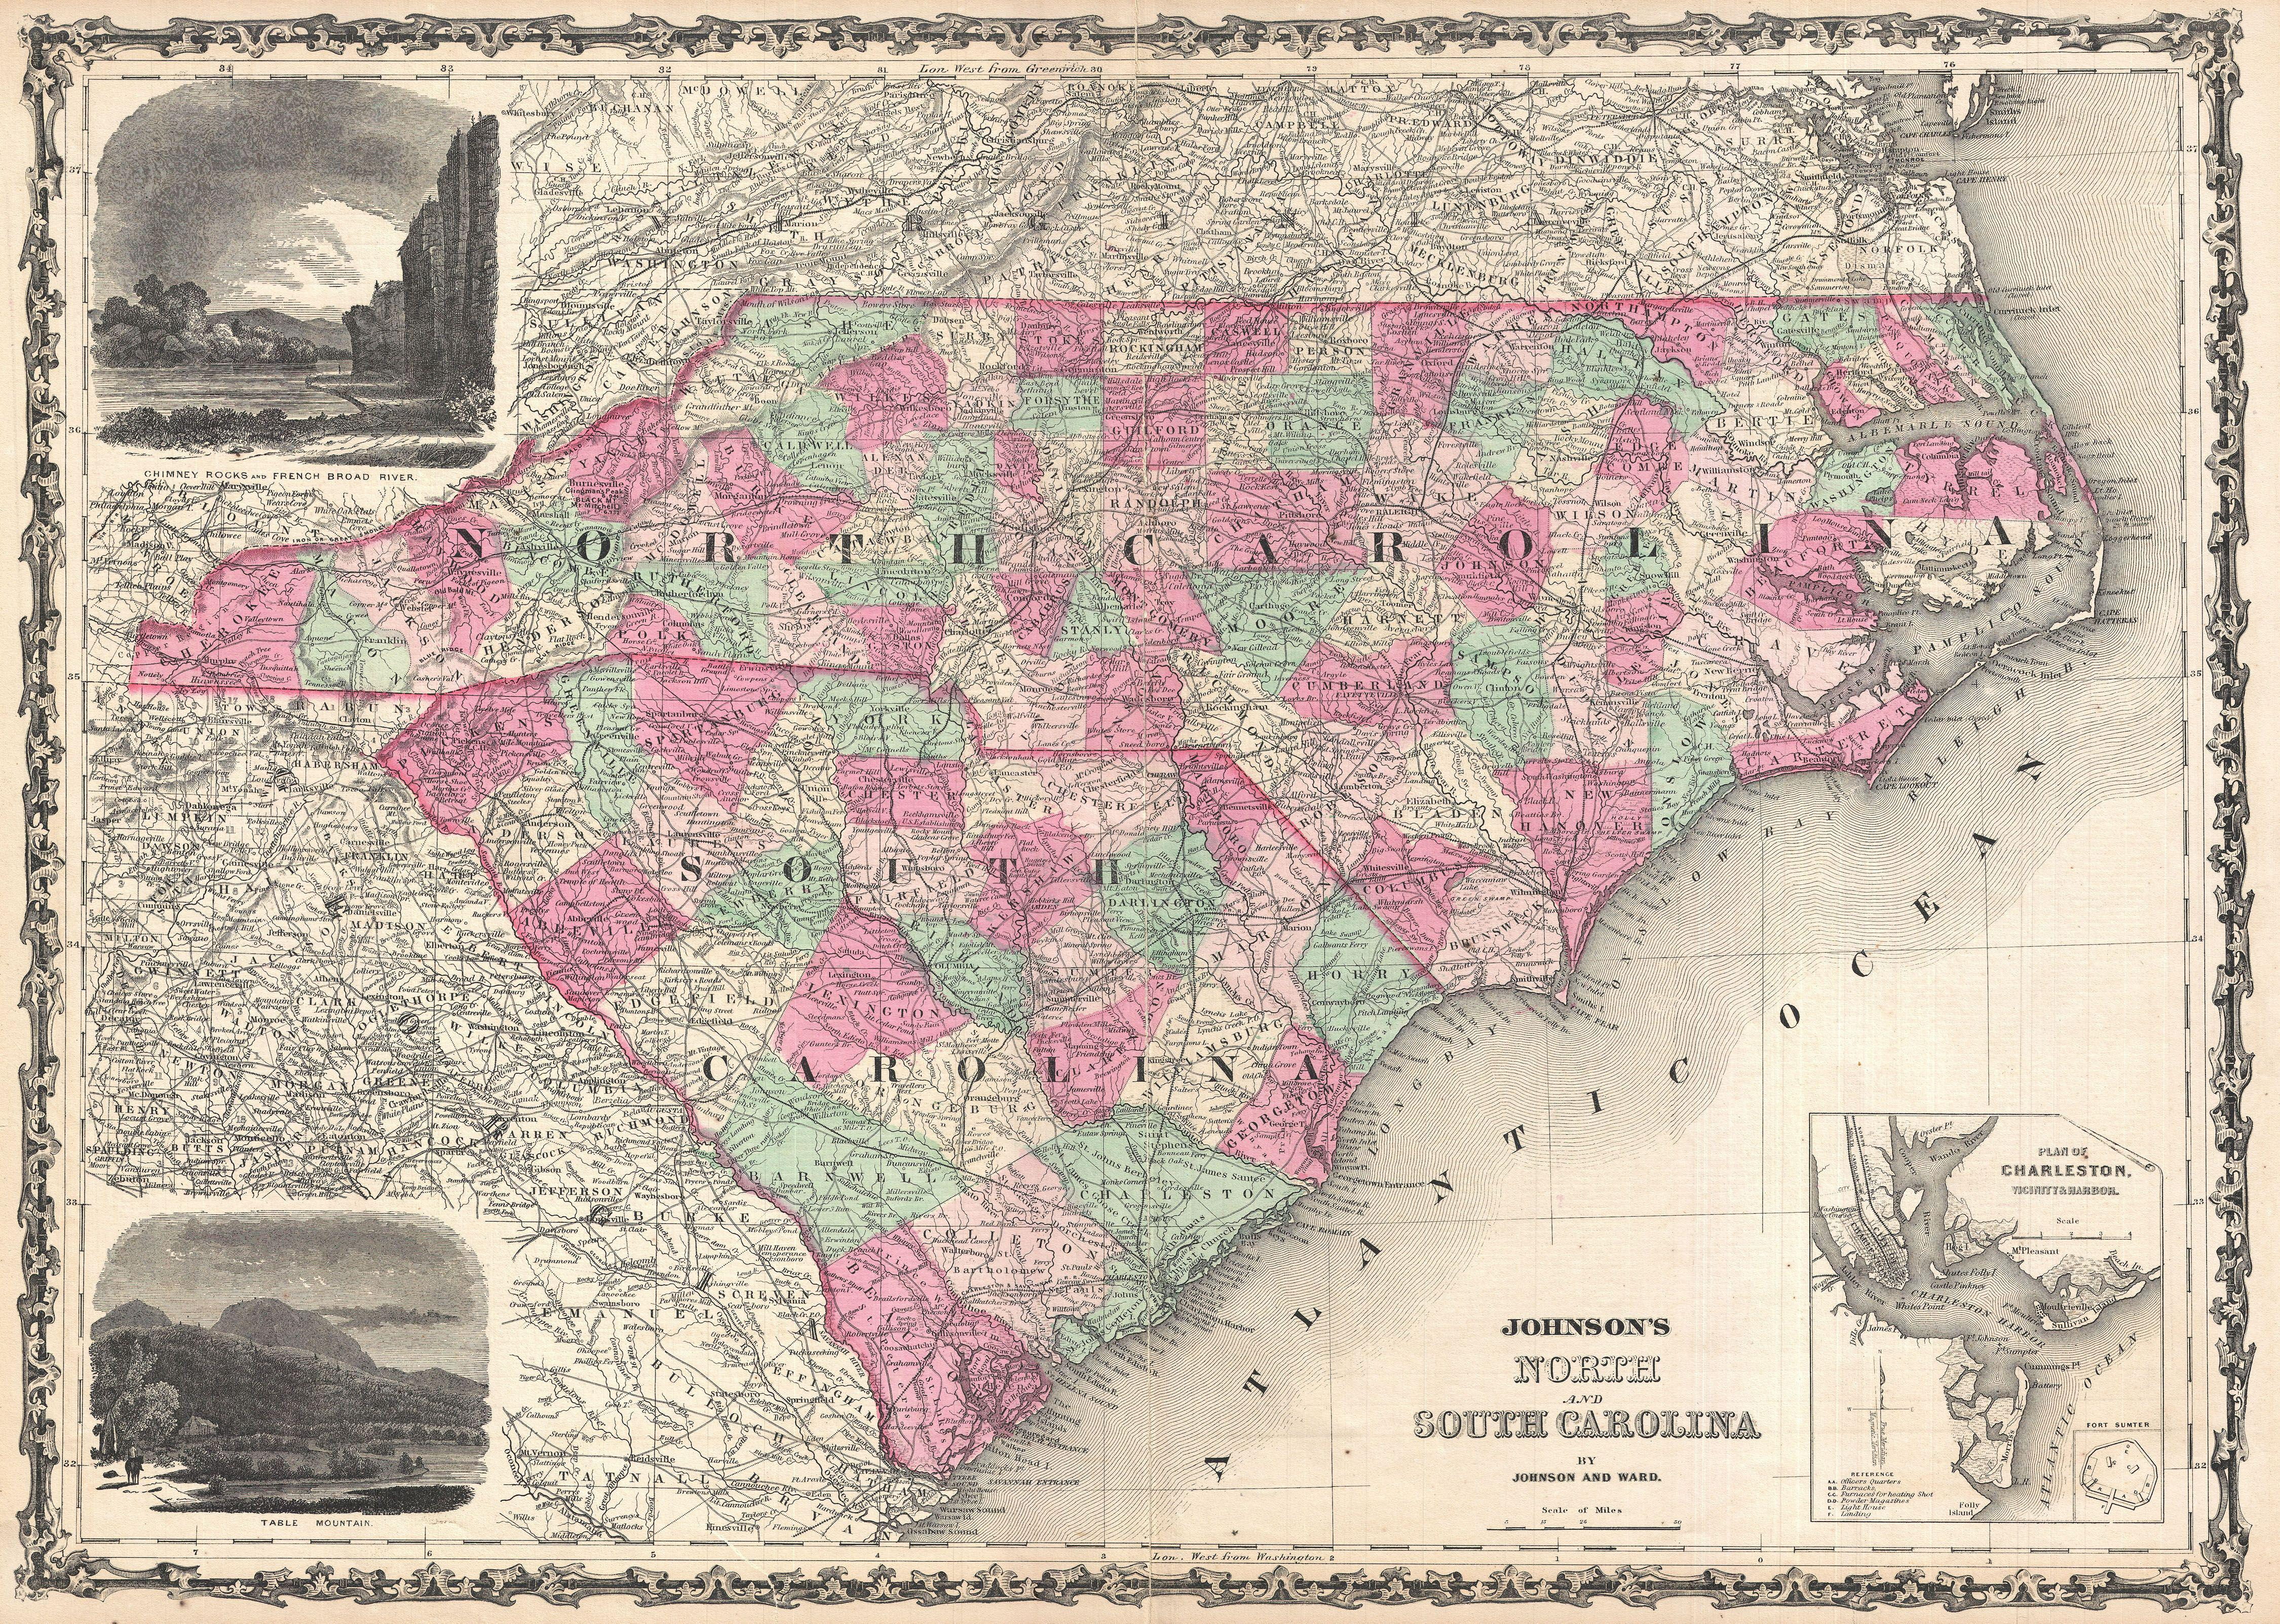 North South Carolina Map.File 1864 Johnson Map Of North Carolina And South Carolina